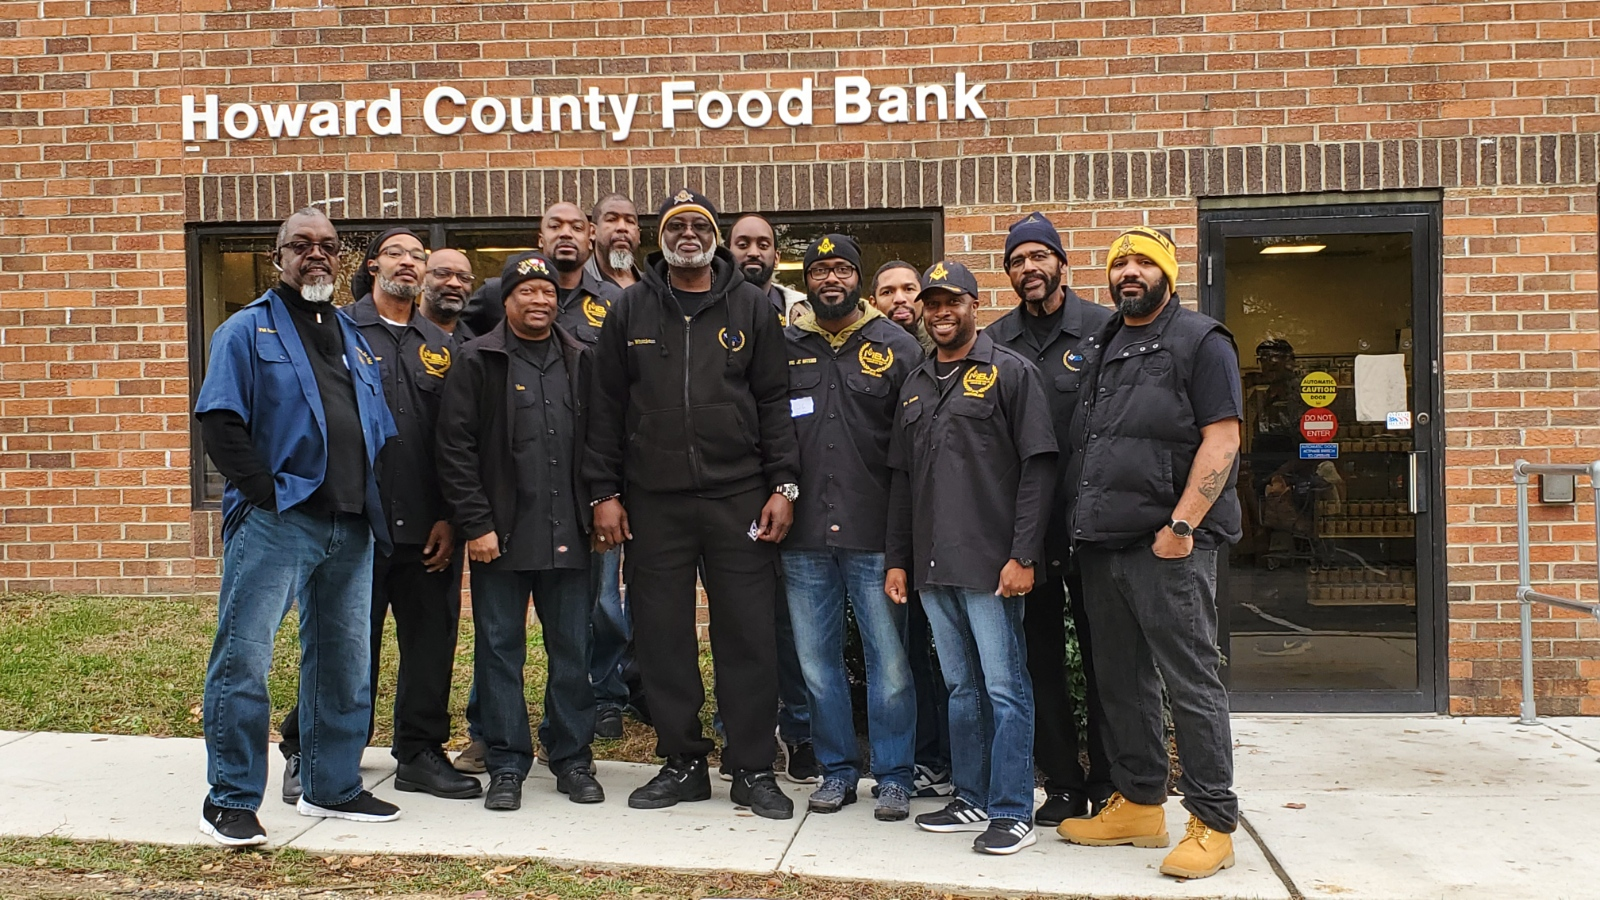 Howard County Food Bank